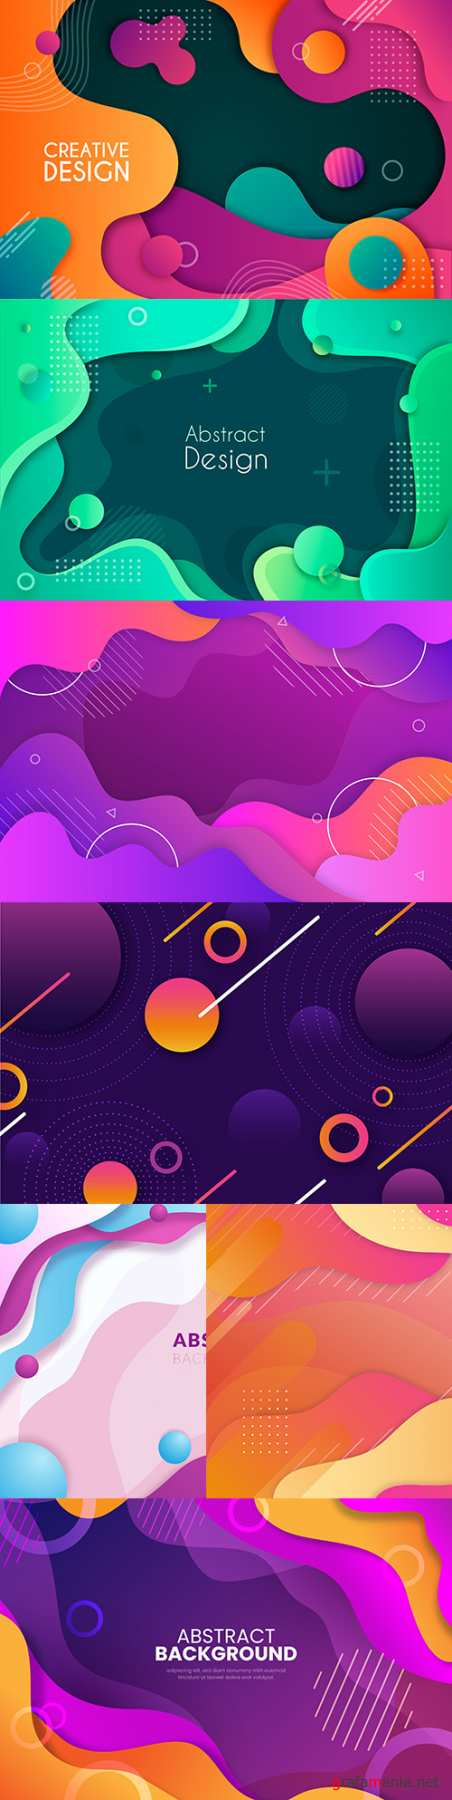 Abstract gradient wave background with colorful shapes 4